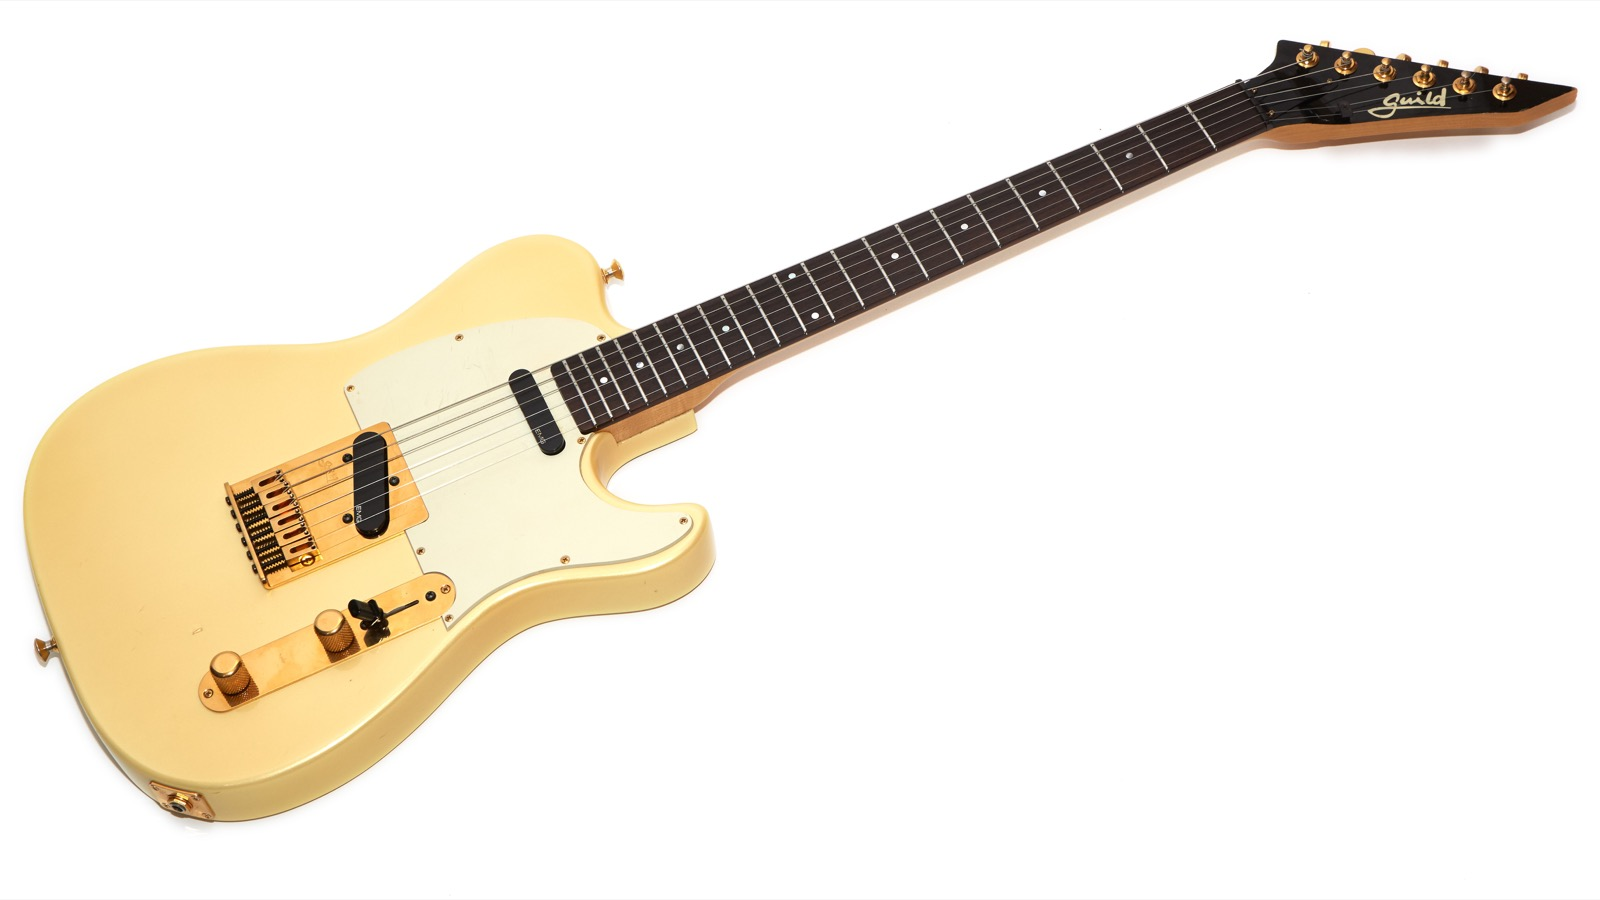 Guild T 250 The Not Roy Buchanan Tele Gads Ramblings Telecaster Wiring Without Capacitor Im Going To Bore You With History Of Fender Because Theres Enough Information On Internet About That Iconic Guitars